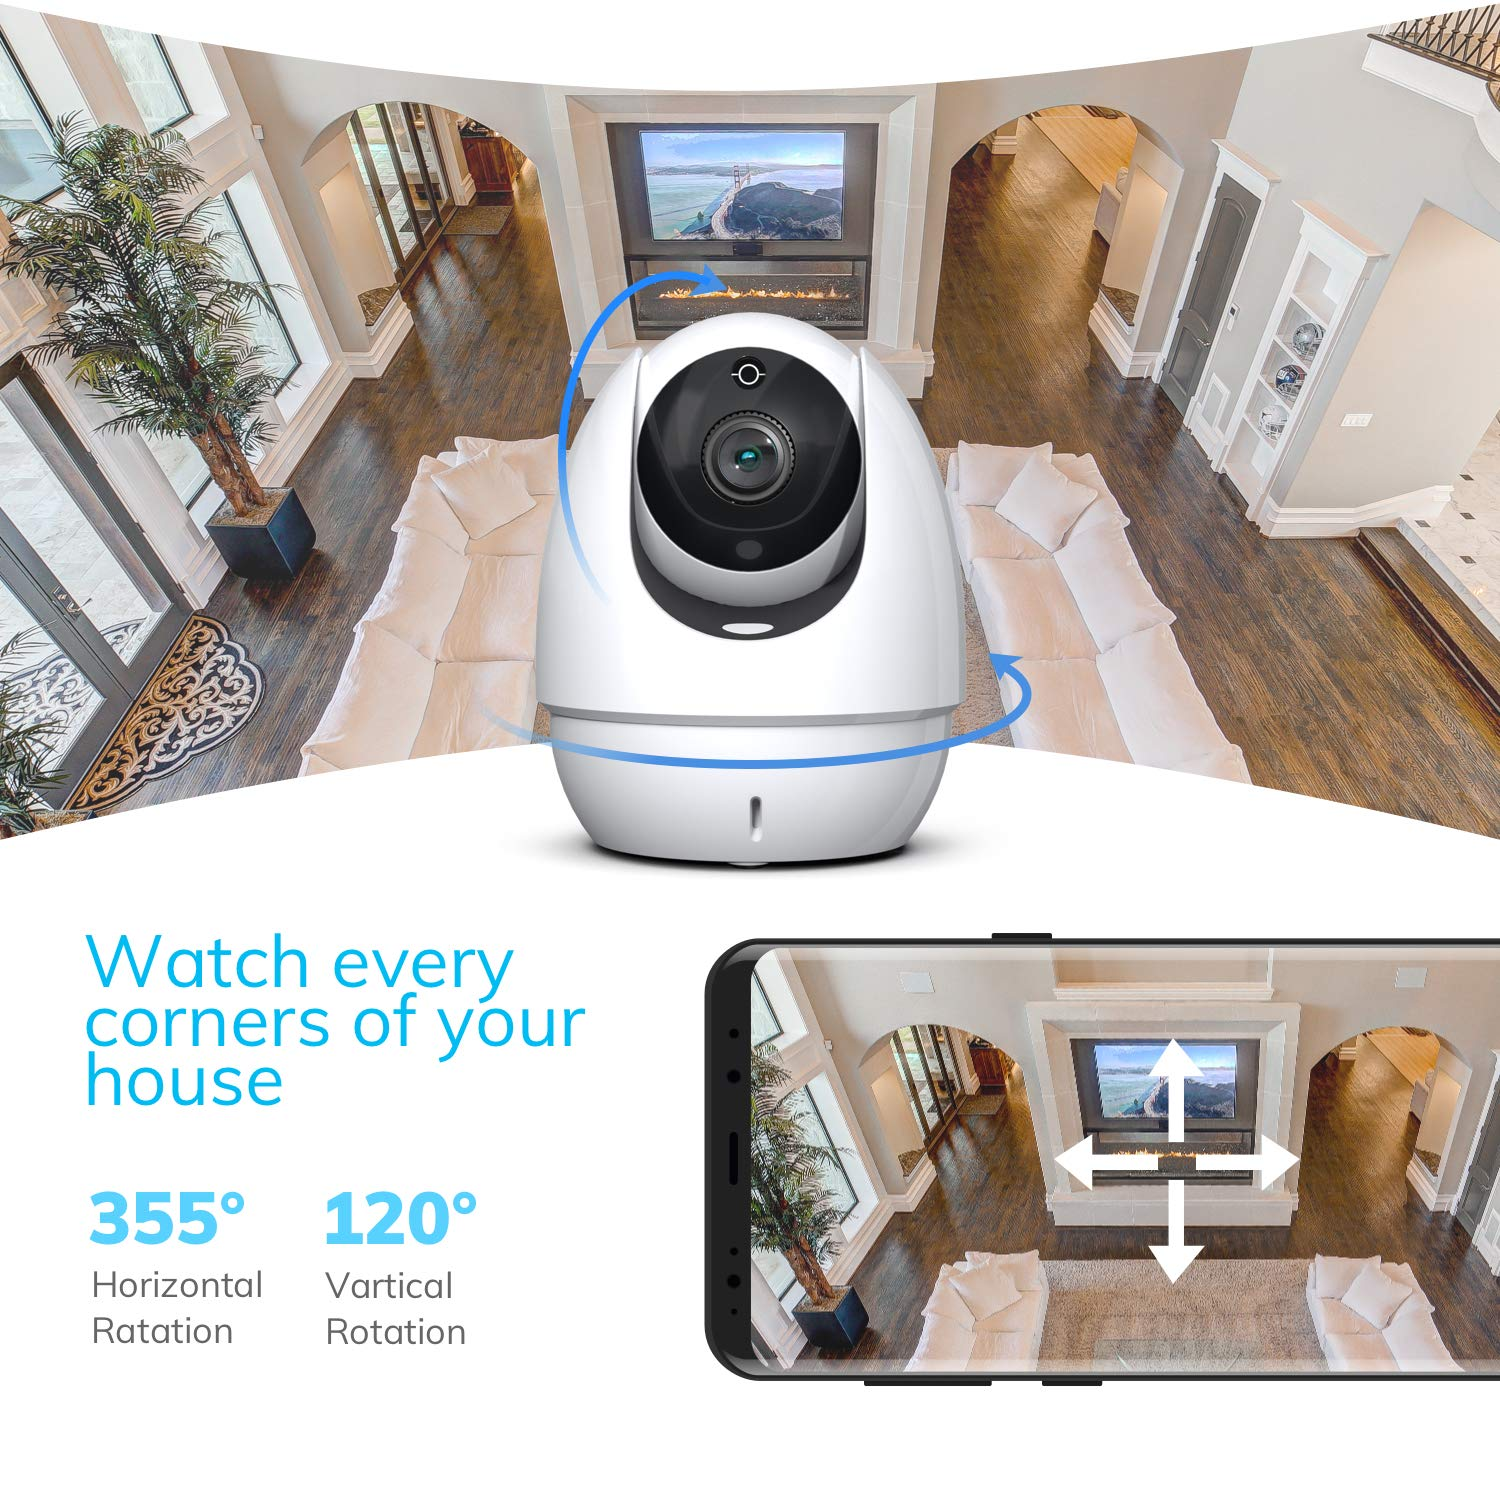 Android//iOS Home Security 1080P Camera Wonbo Wireless Surveillance Pet Baby Dog Monitor IP Camera with 2.4G WiFi Two-Way Audio IR Night Vision